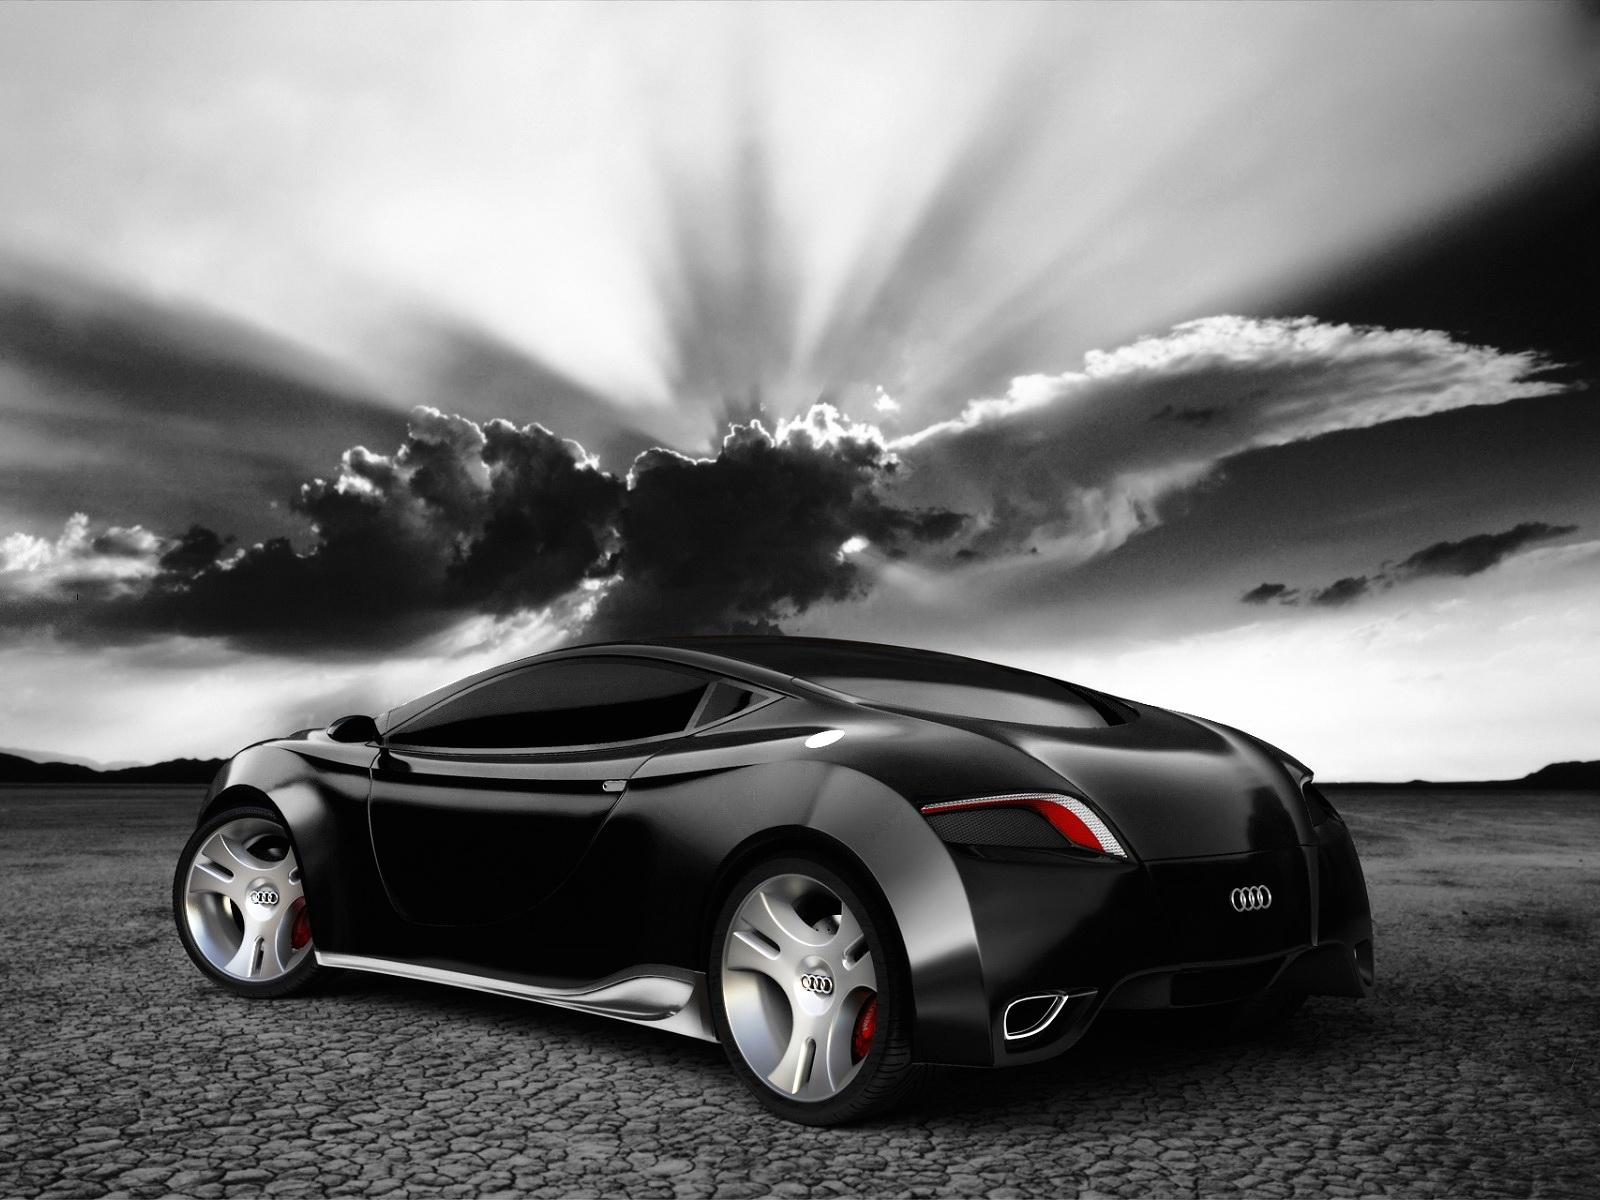 cool car wallpaper hd - photo #42